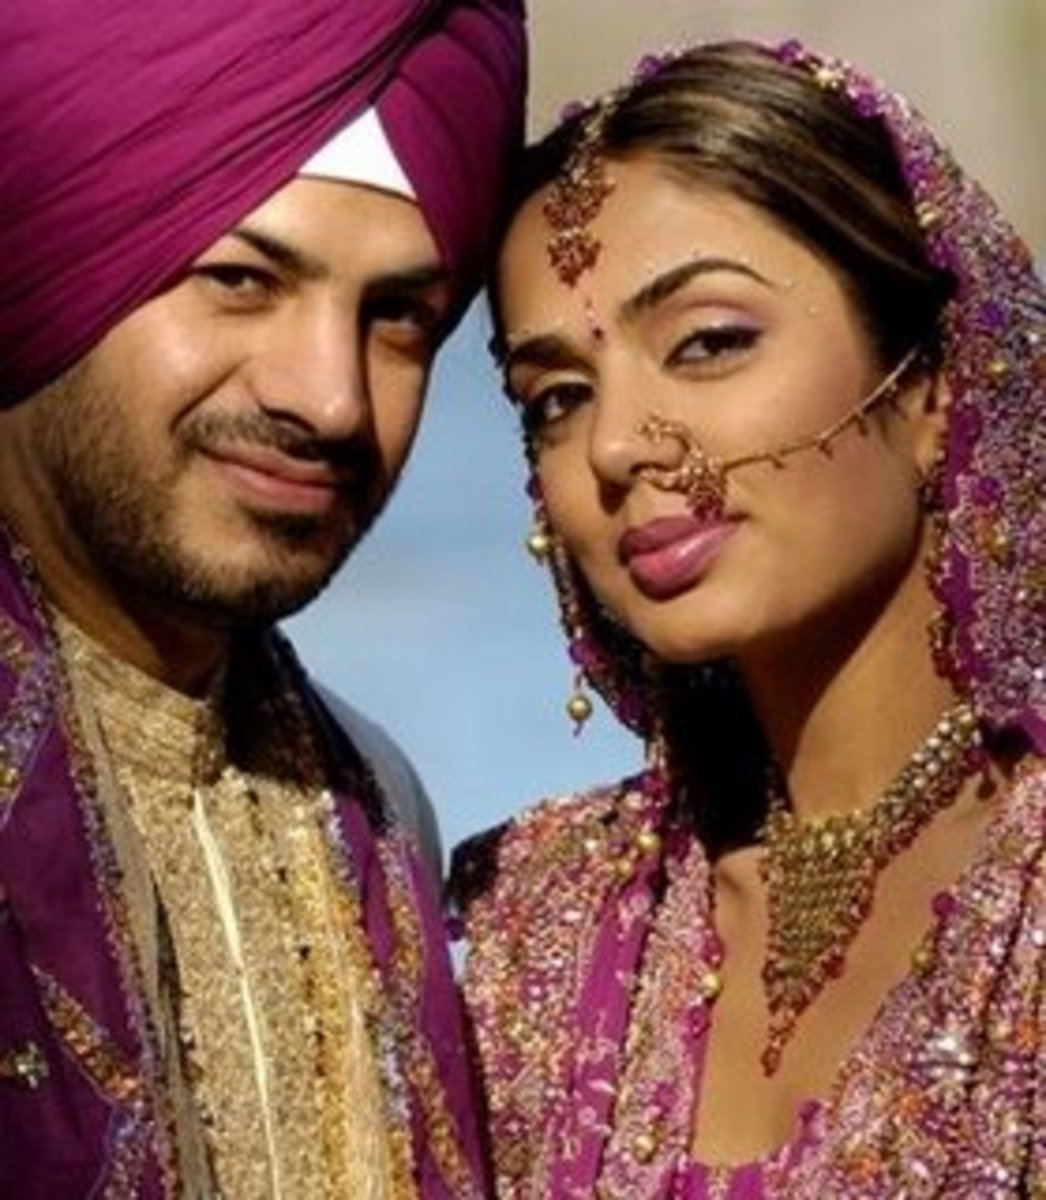 Arranged marriage - it still exists today and it may have benefits.